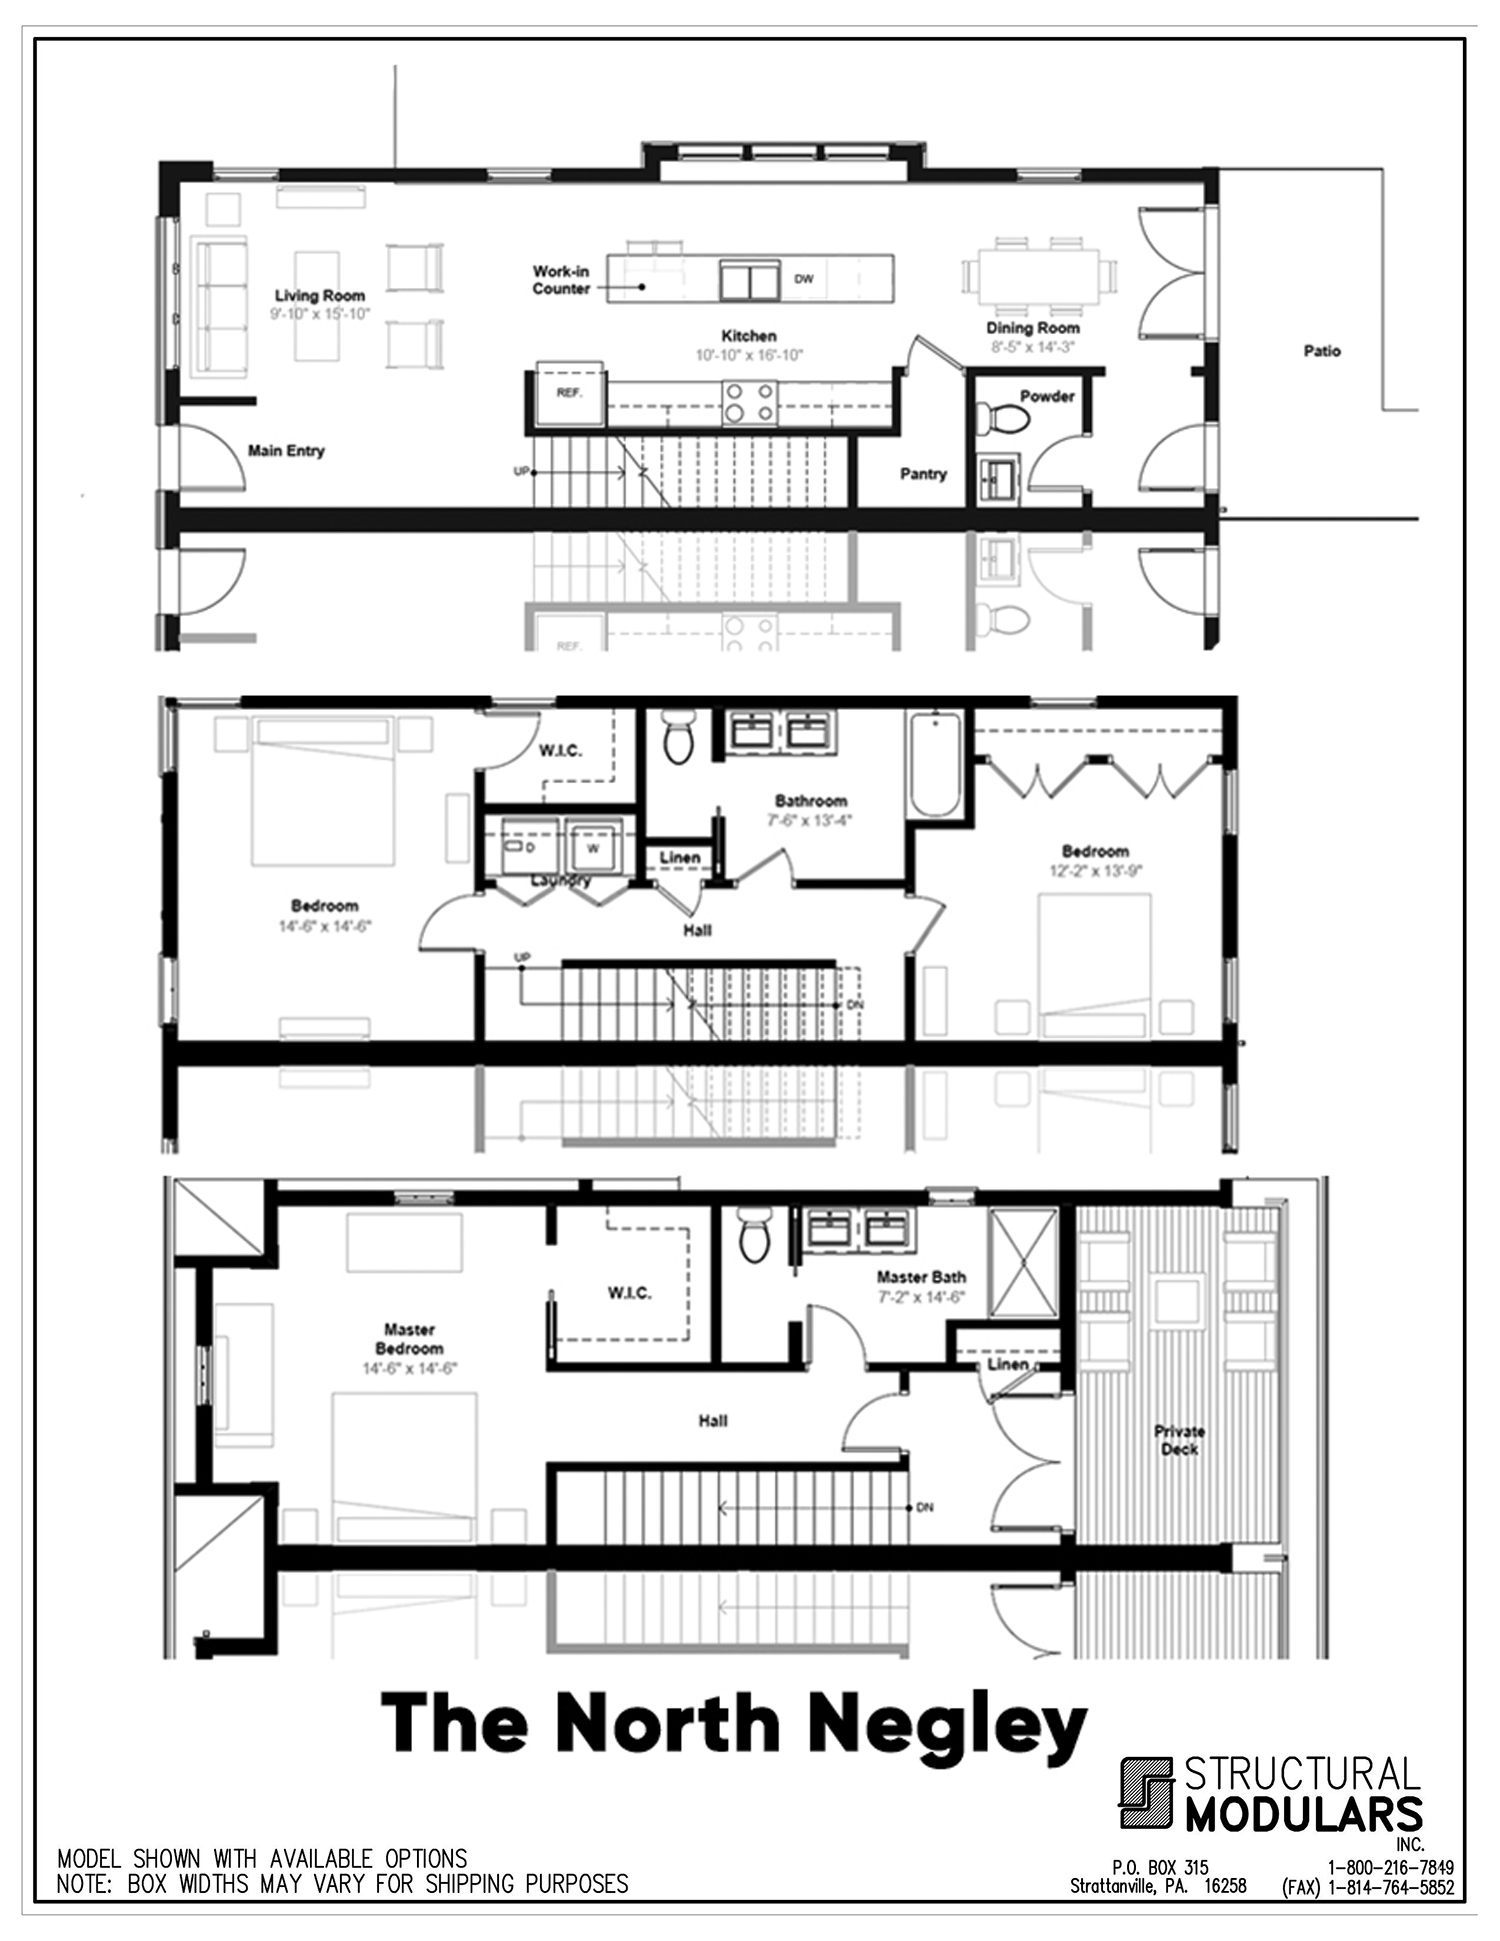 The North Negley Floor Plans